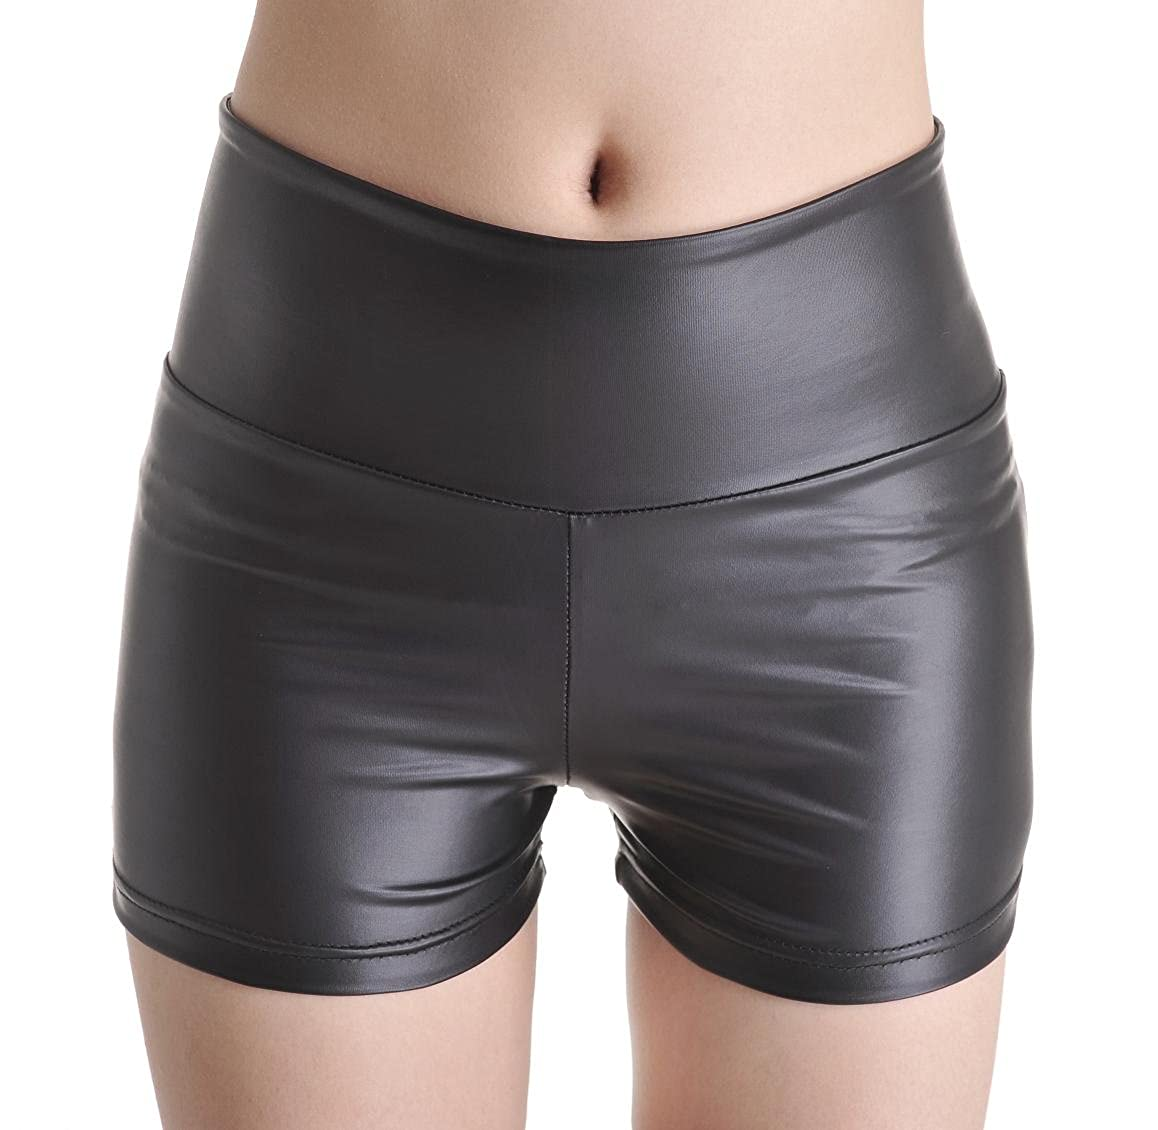 Long-Perfect Fashion Faux Leather Shorts High Waist Hot Pants Black